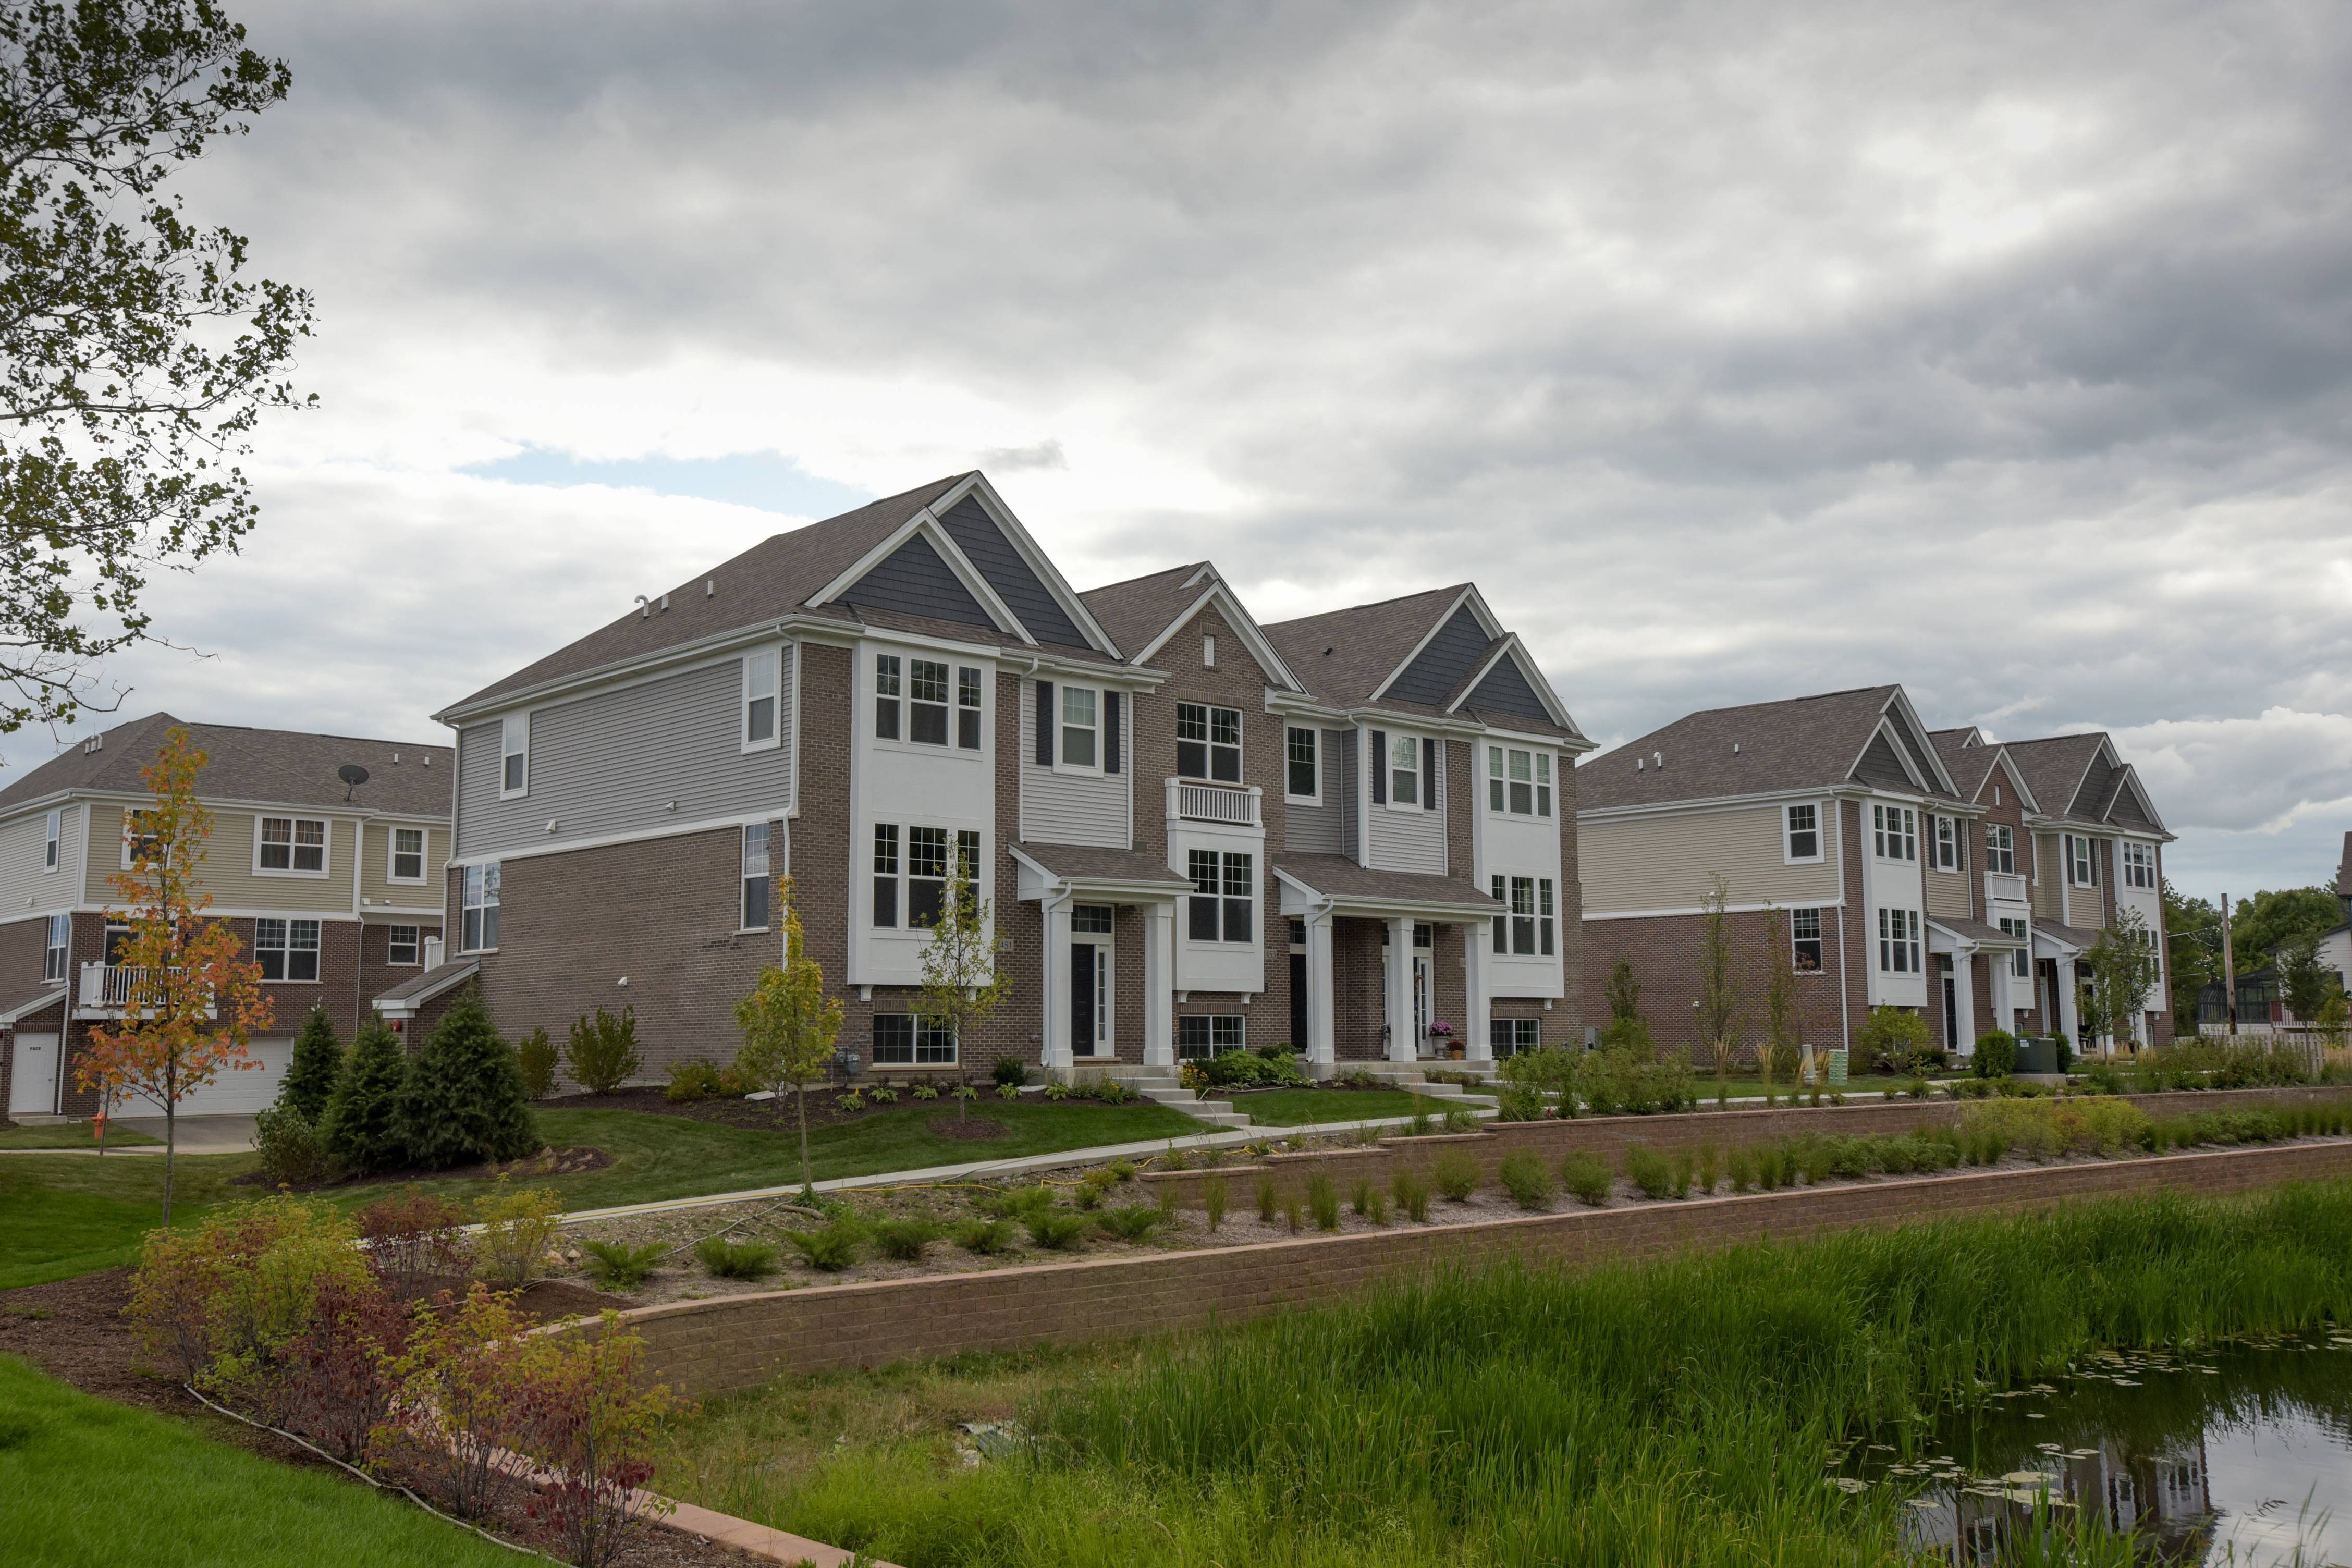 The Bauer Place development north of Ogden Avenue in Naperville includes 28 townhouses that are built or under construction, and a third phase approved this week will add nine more units.